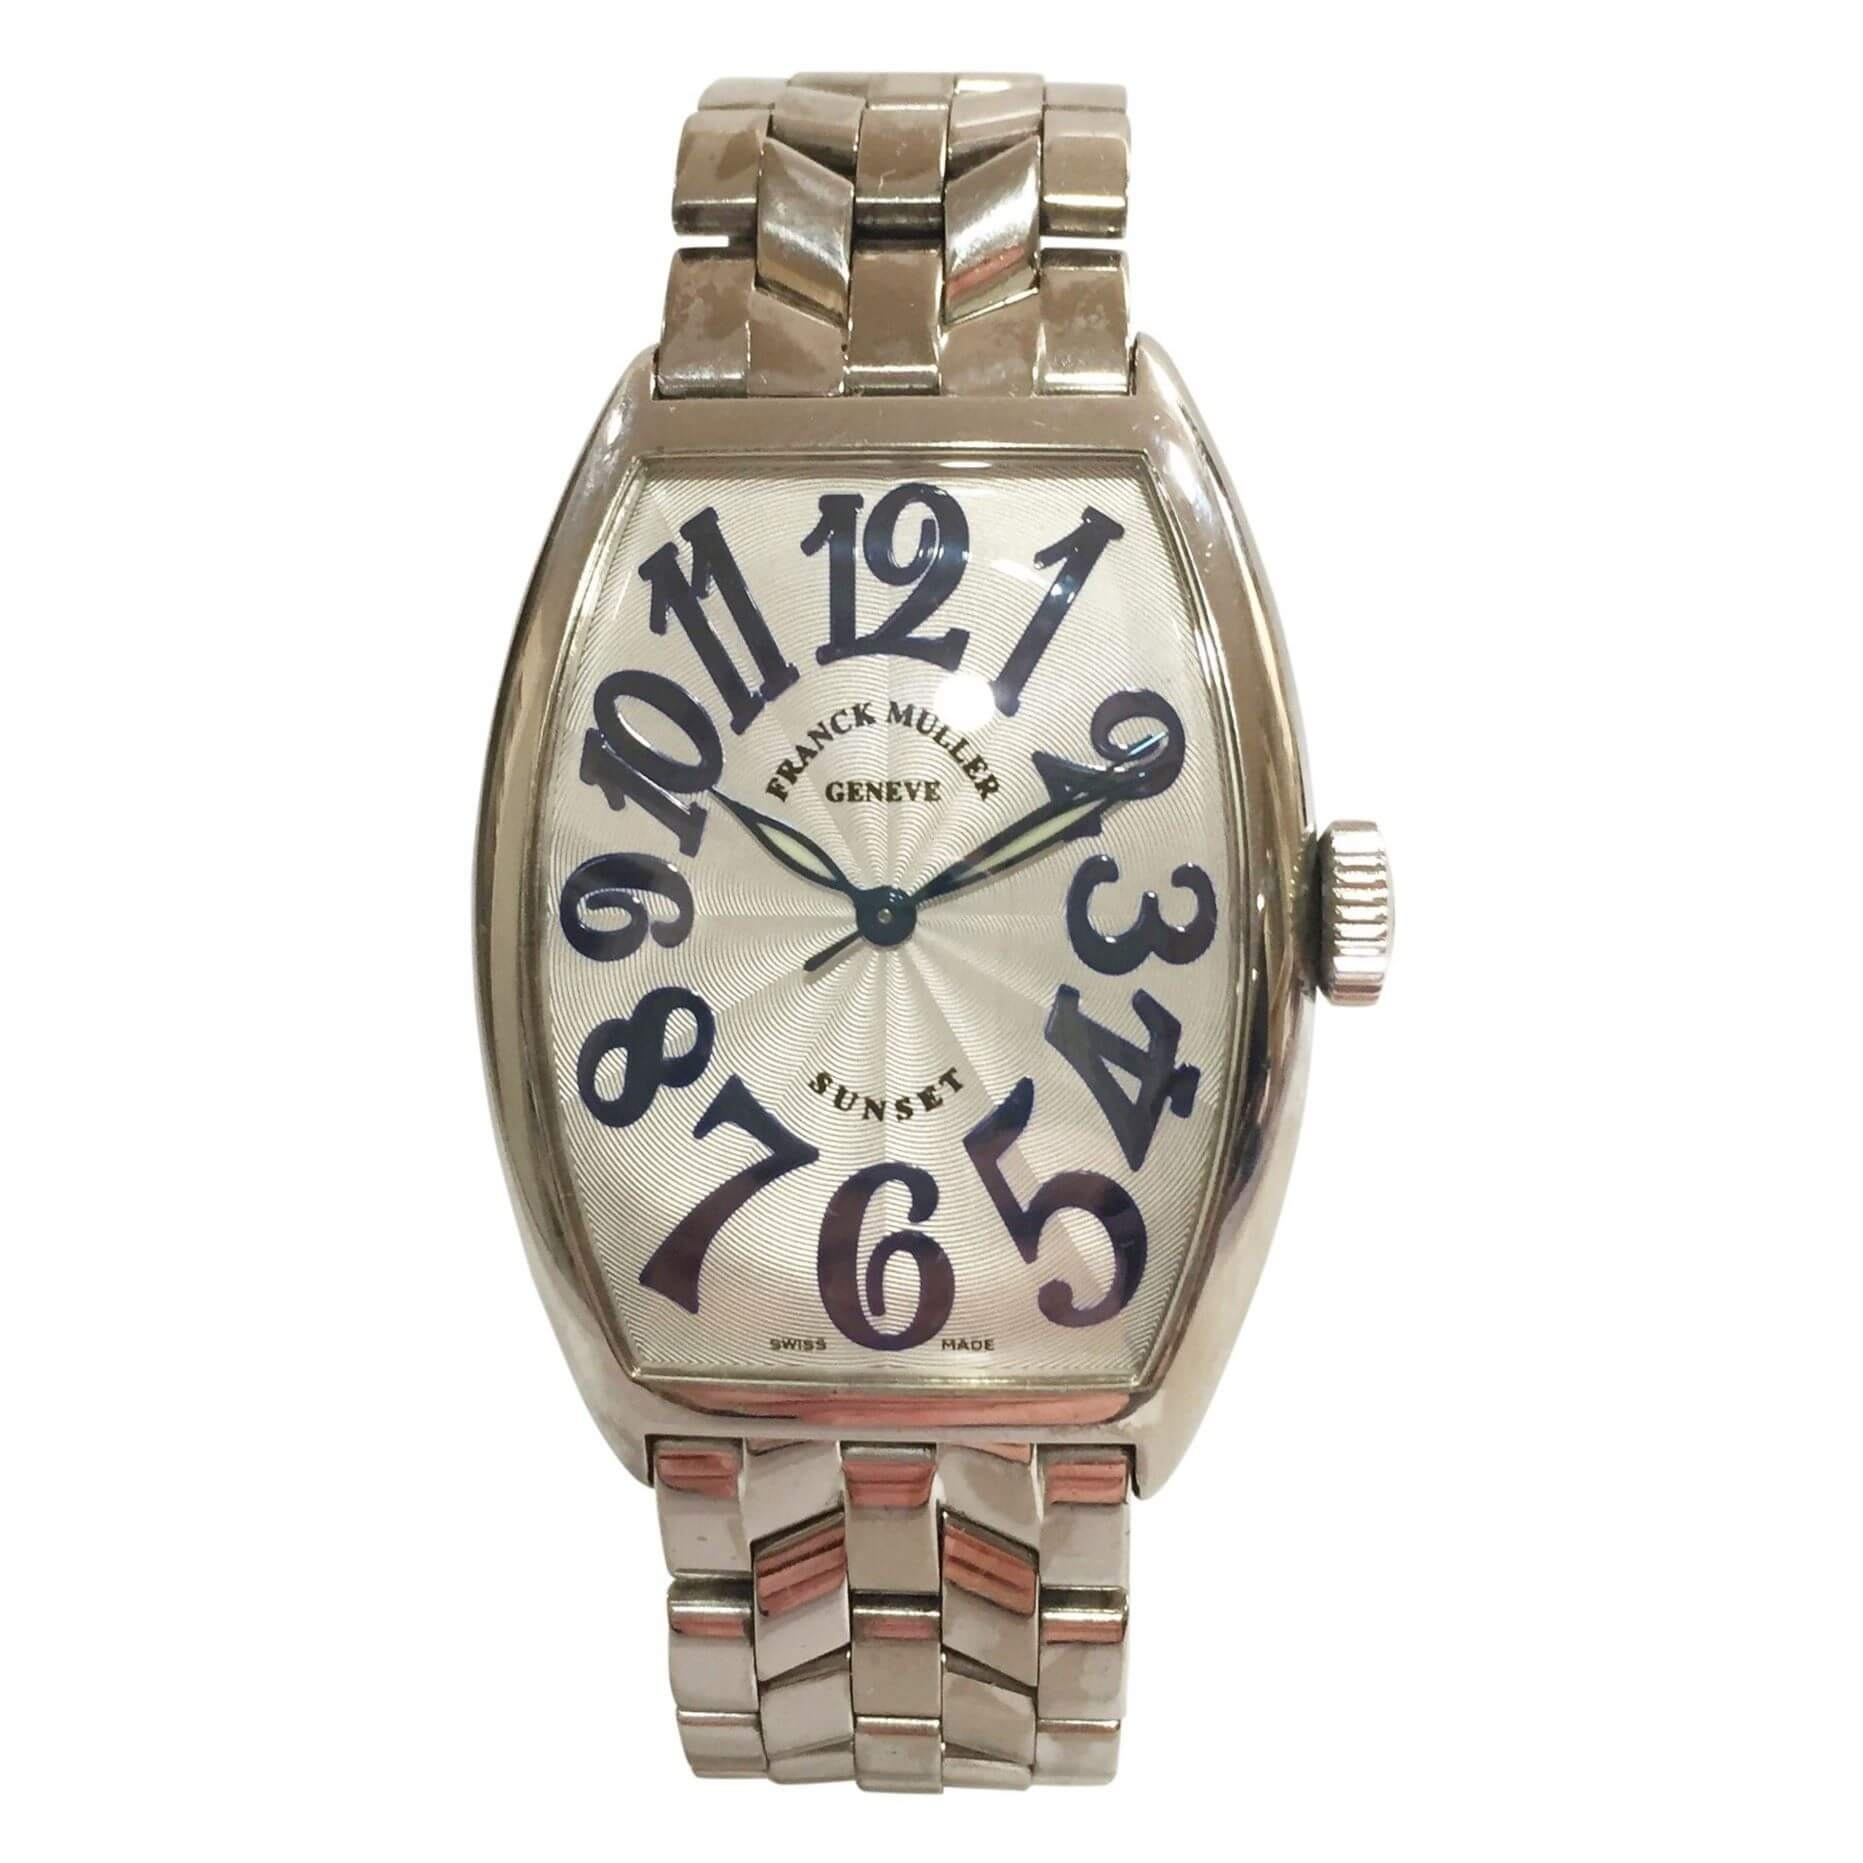 franck muller sunset 18ct white gold 5850sc vintage mens watch franck muller sunset 18ct white gold 5850sc mens vintage watch